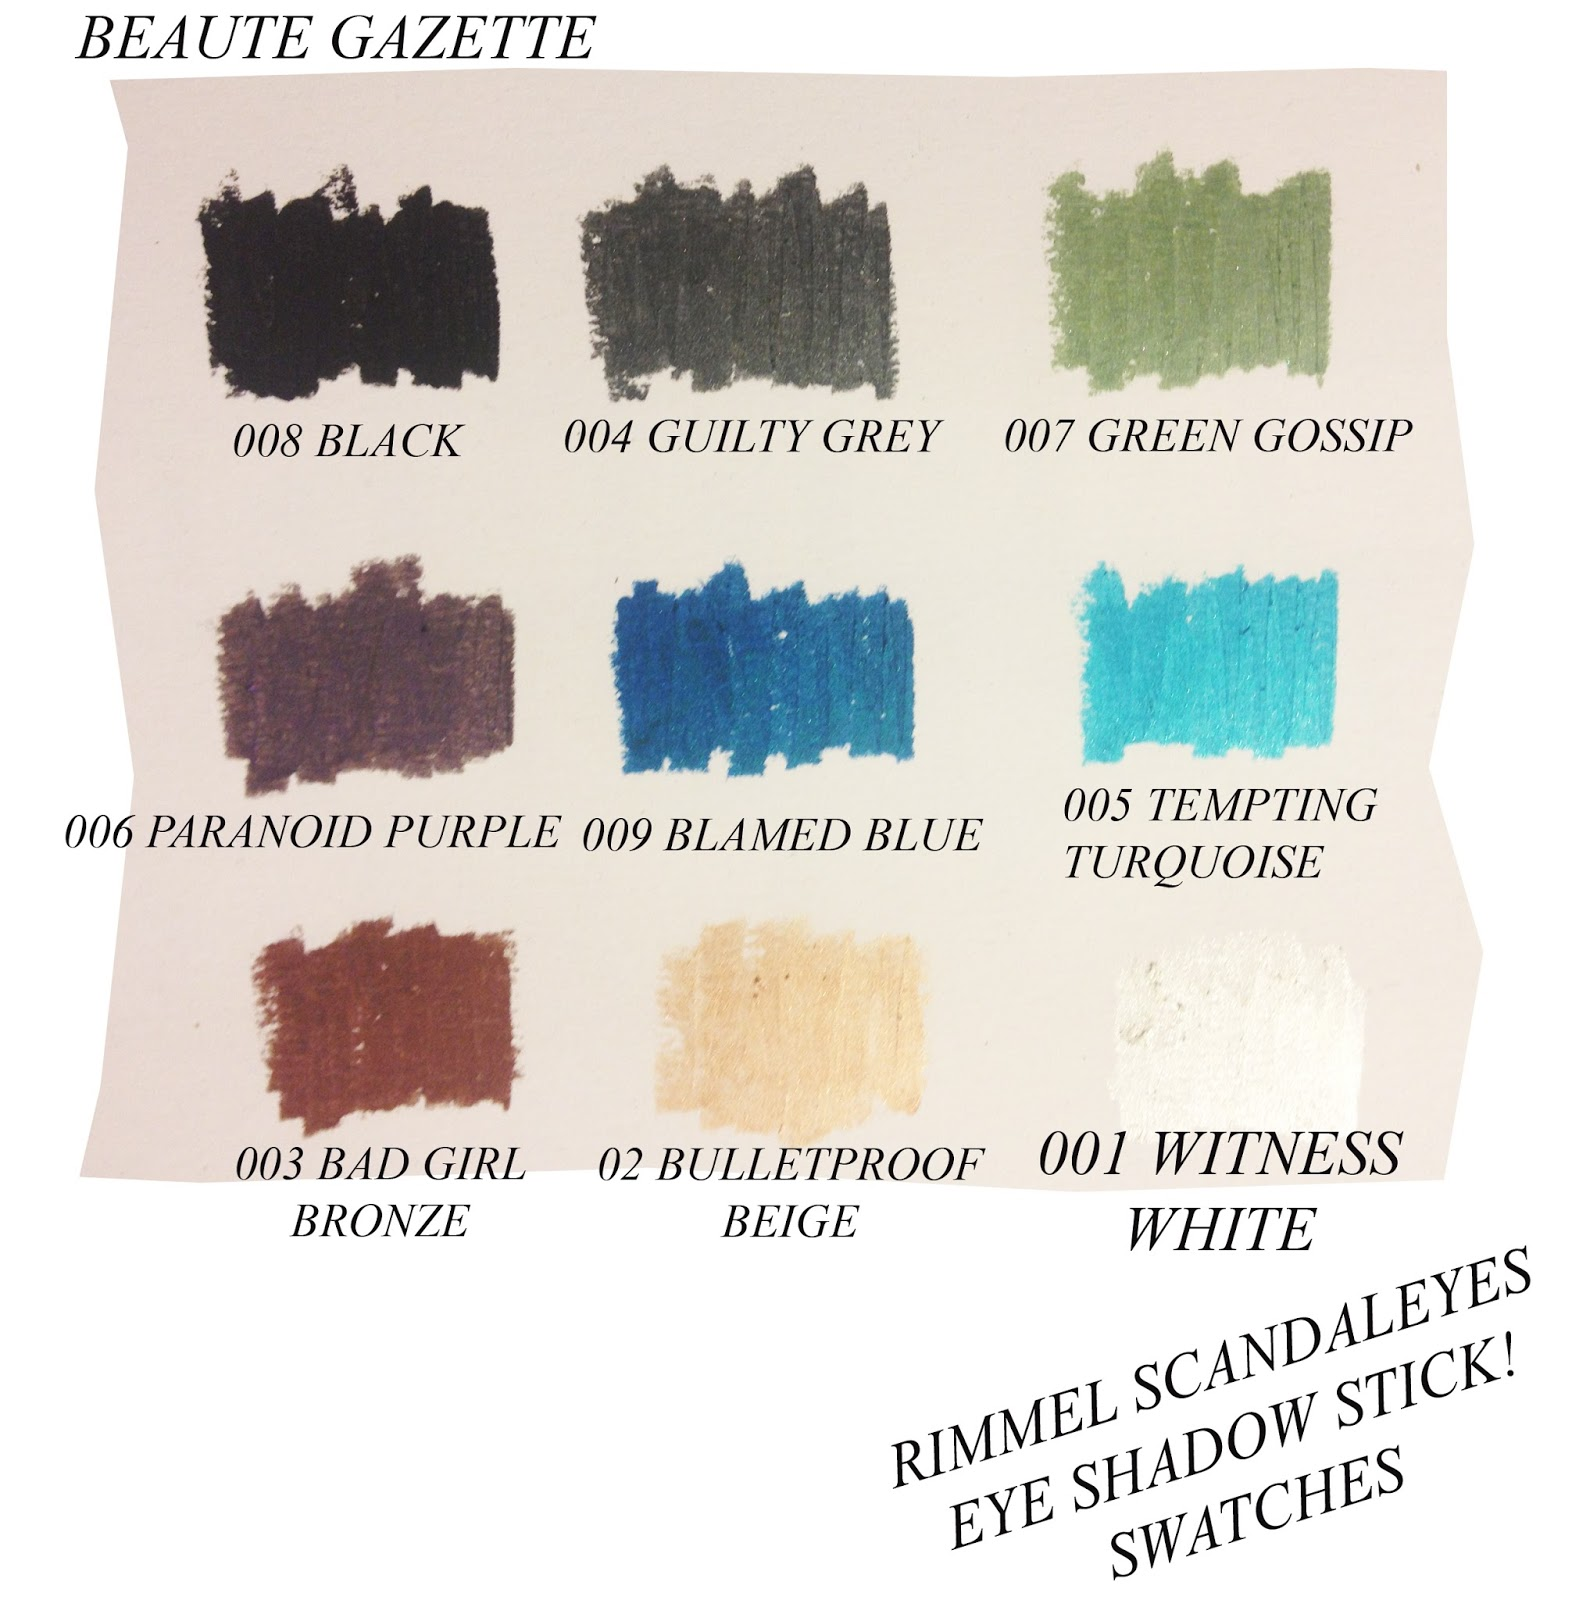 2ed90391979 Beauté Gazette: Rimmel SCANDALEYES Eye Shadow Sticks Collection Review